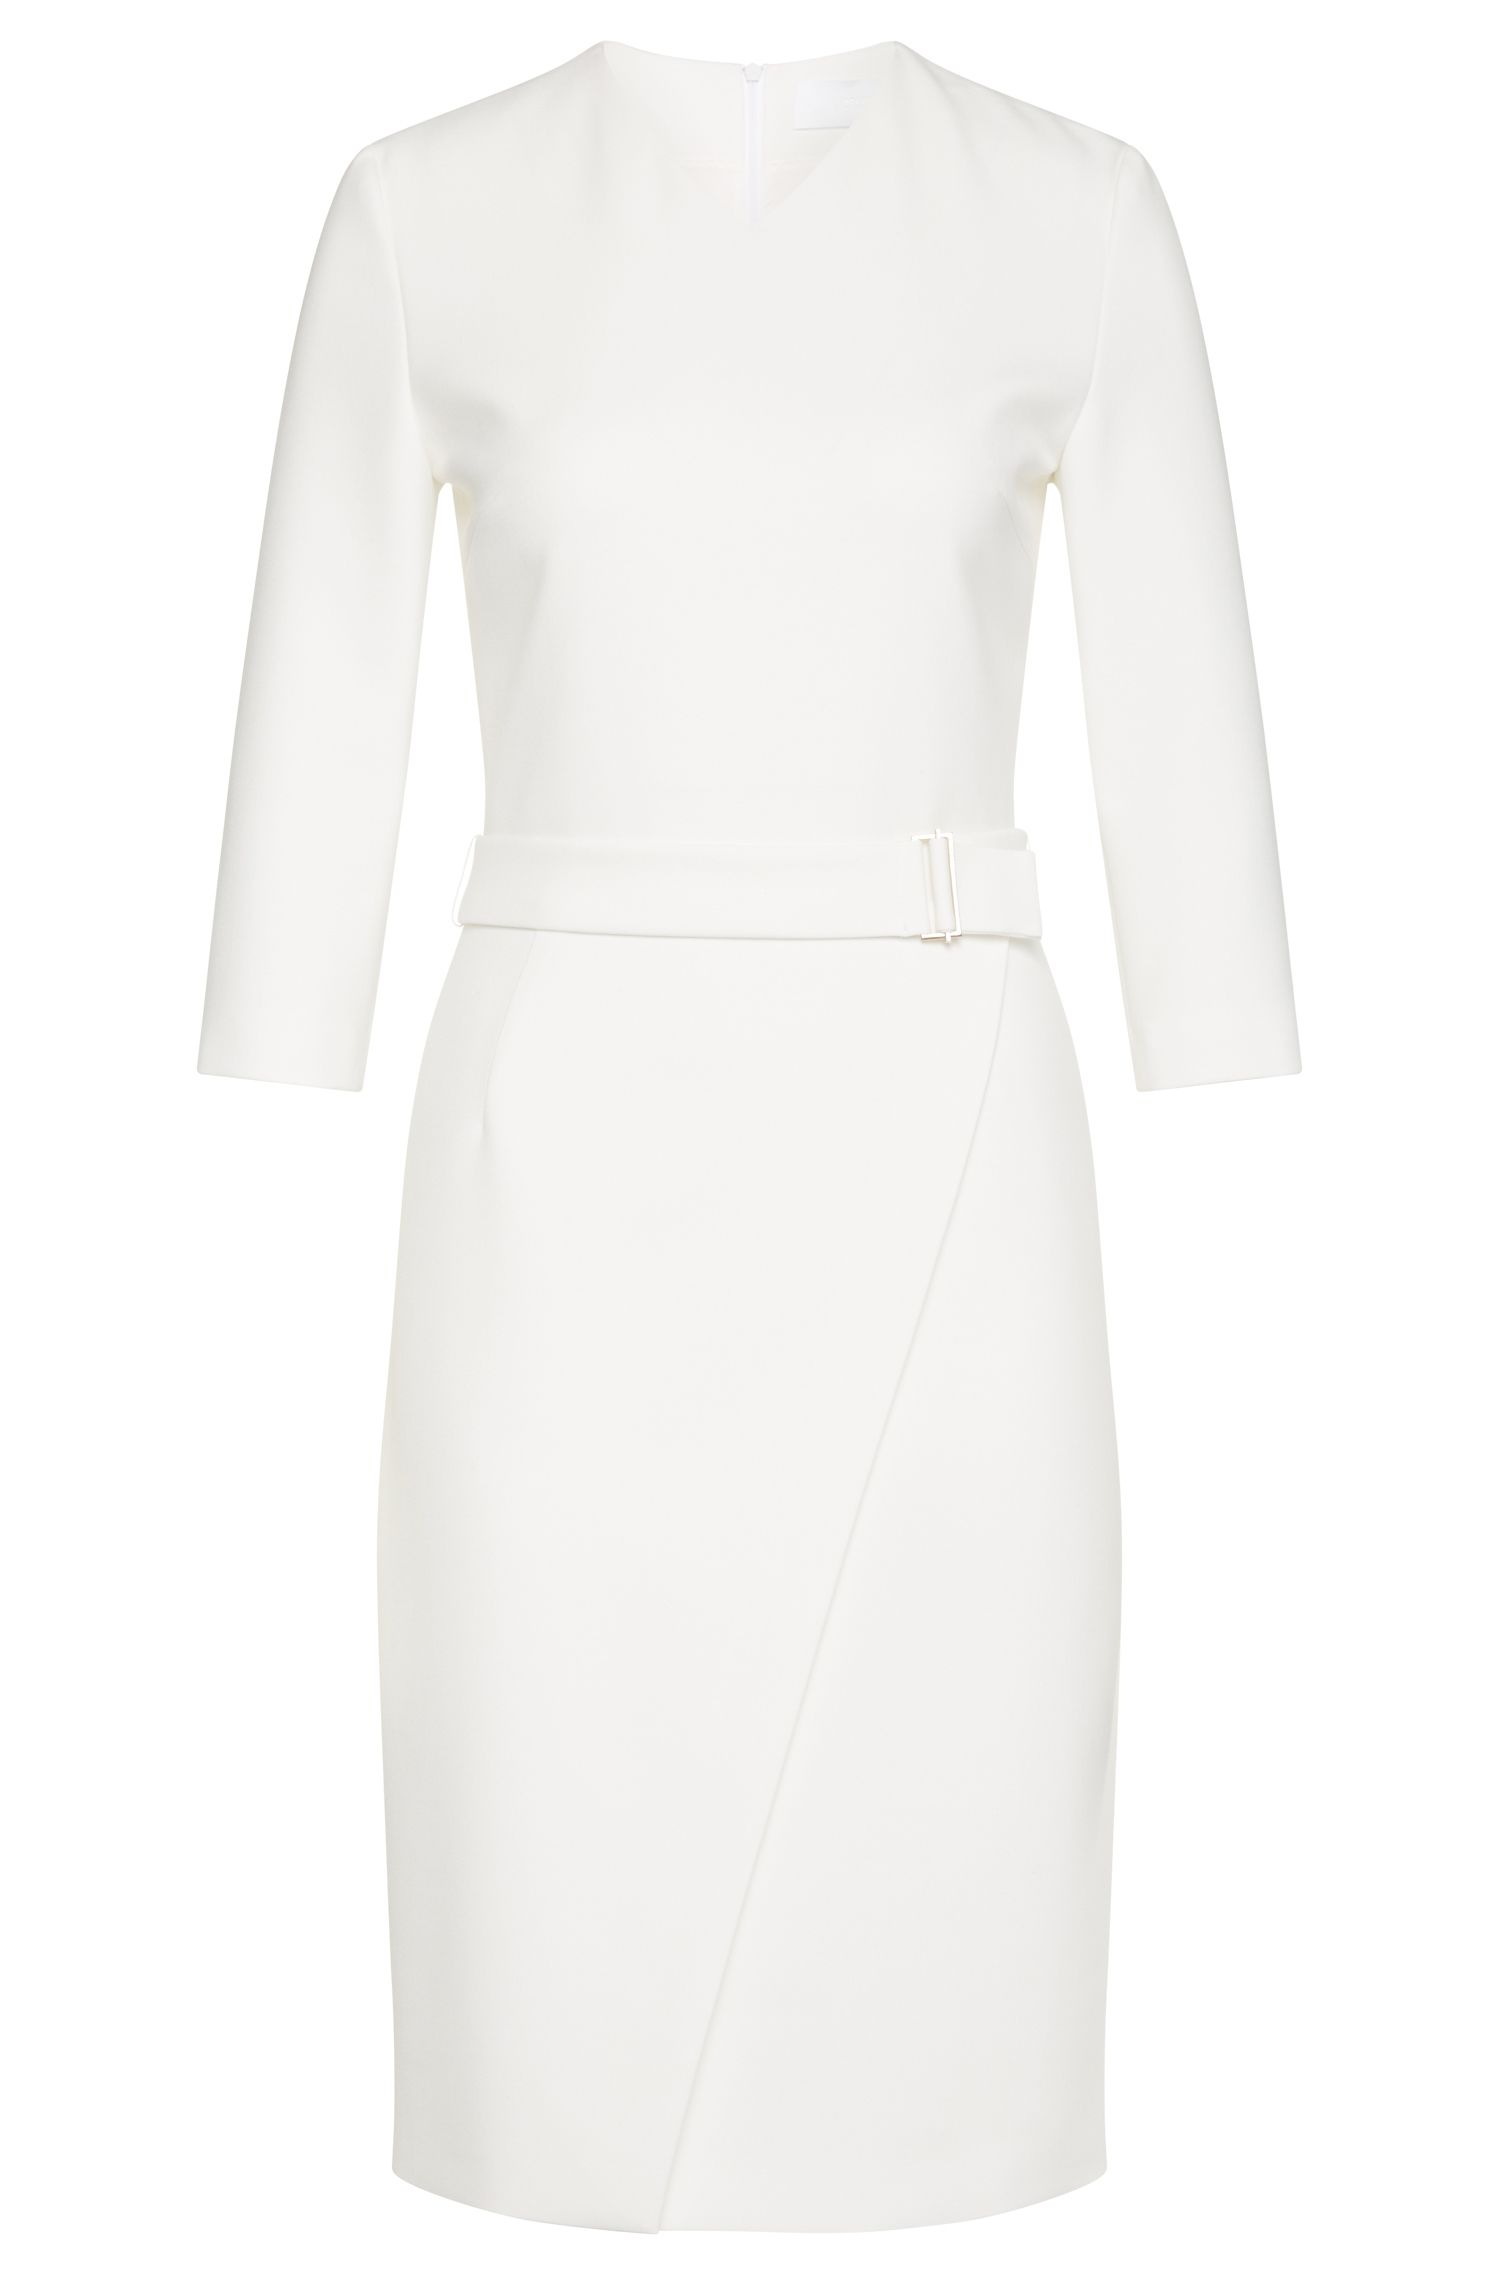 'Dylea' | Stretch Cotton Blend Belted Wrap Skirt Sheath Dress